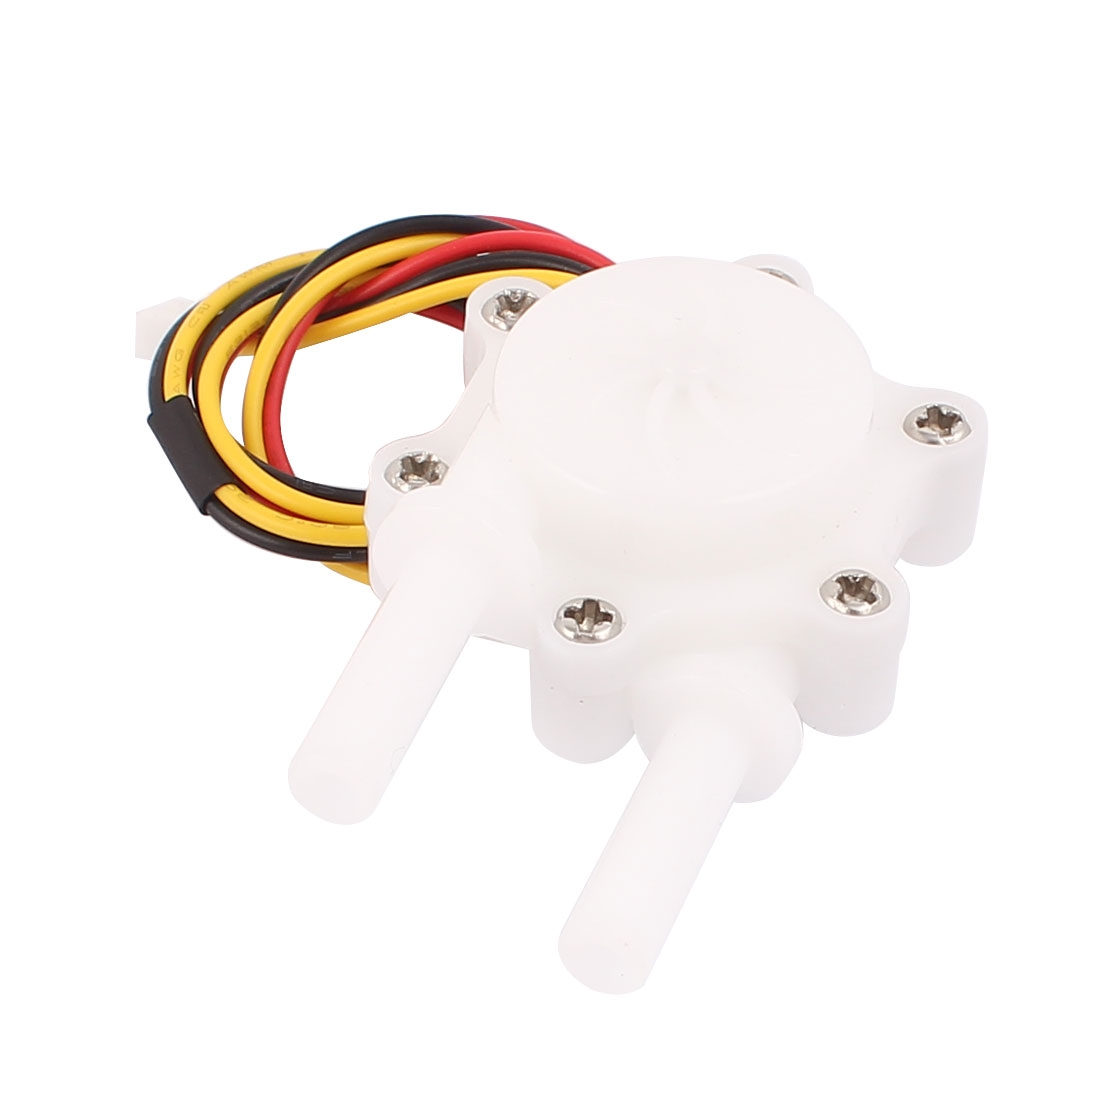 0.3-4.0L/min One Way 6mm Inlet Outlet Outside Dia Water Flow Counter Sensor